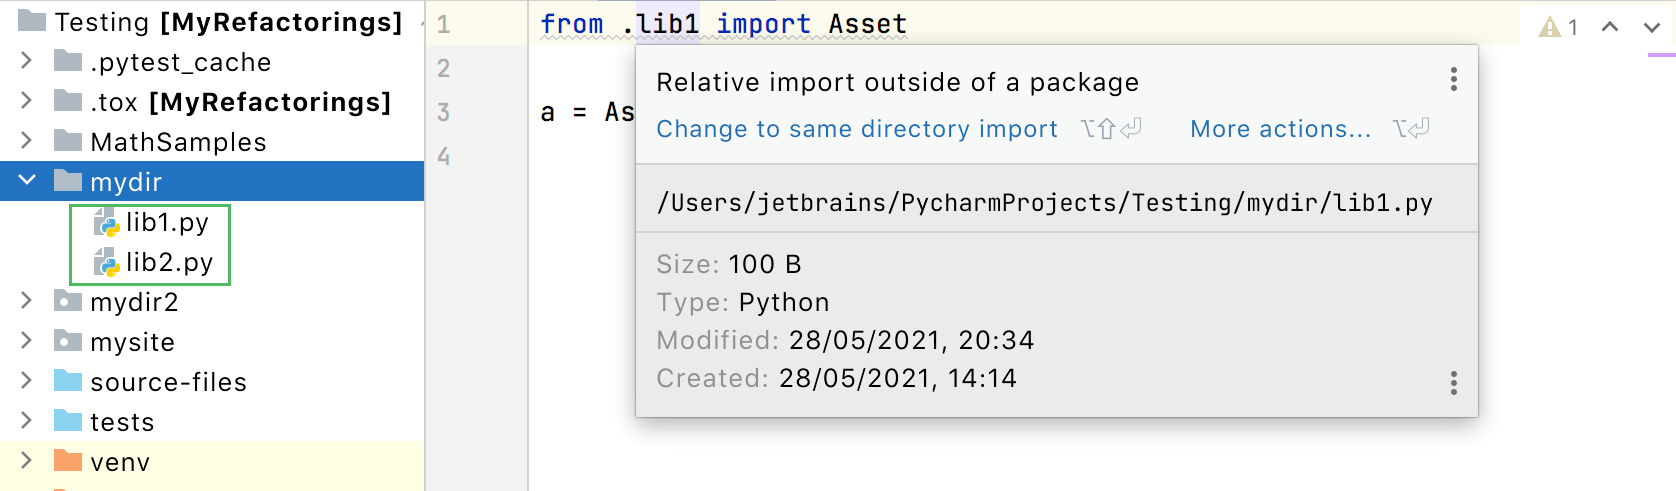 Relative import outside of the package